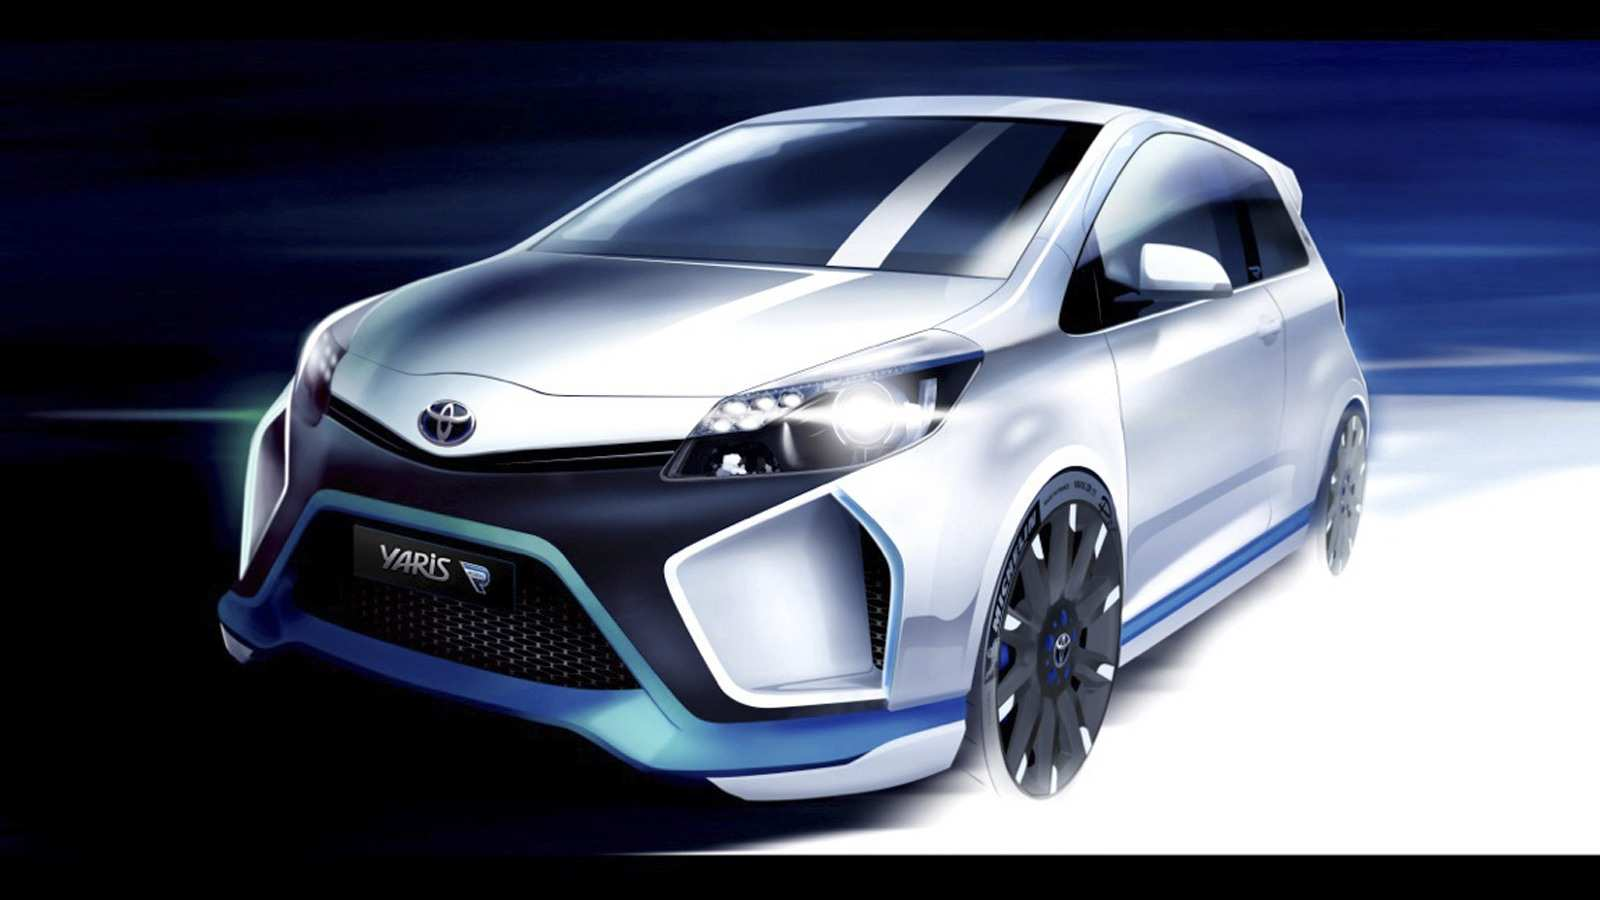 32 Gallery of Toyota Yaris 2020 Concept Concept with Toyota Yaris 2020 Concept